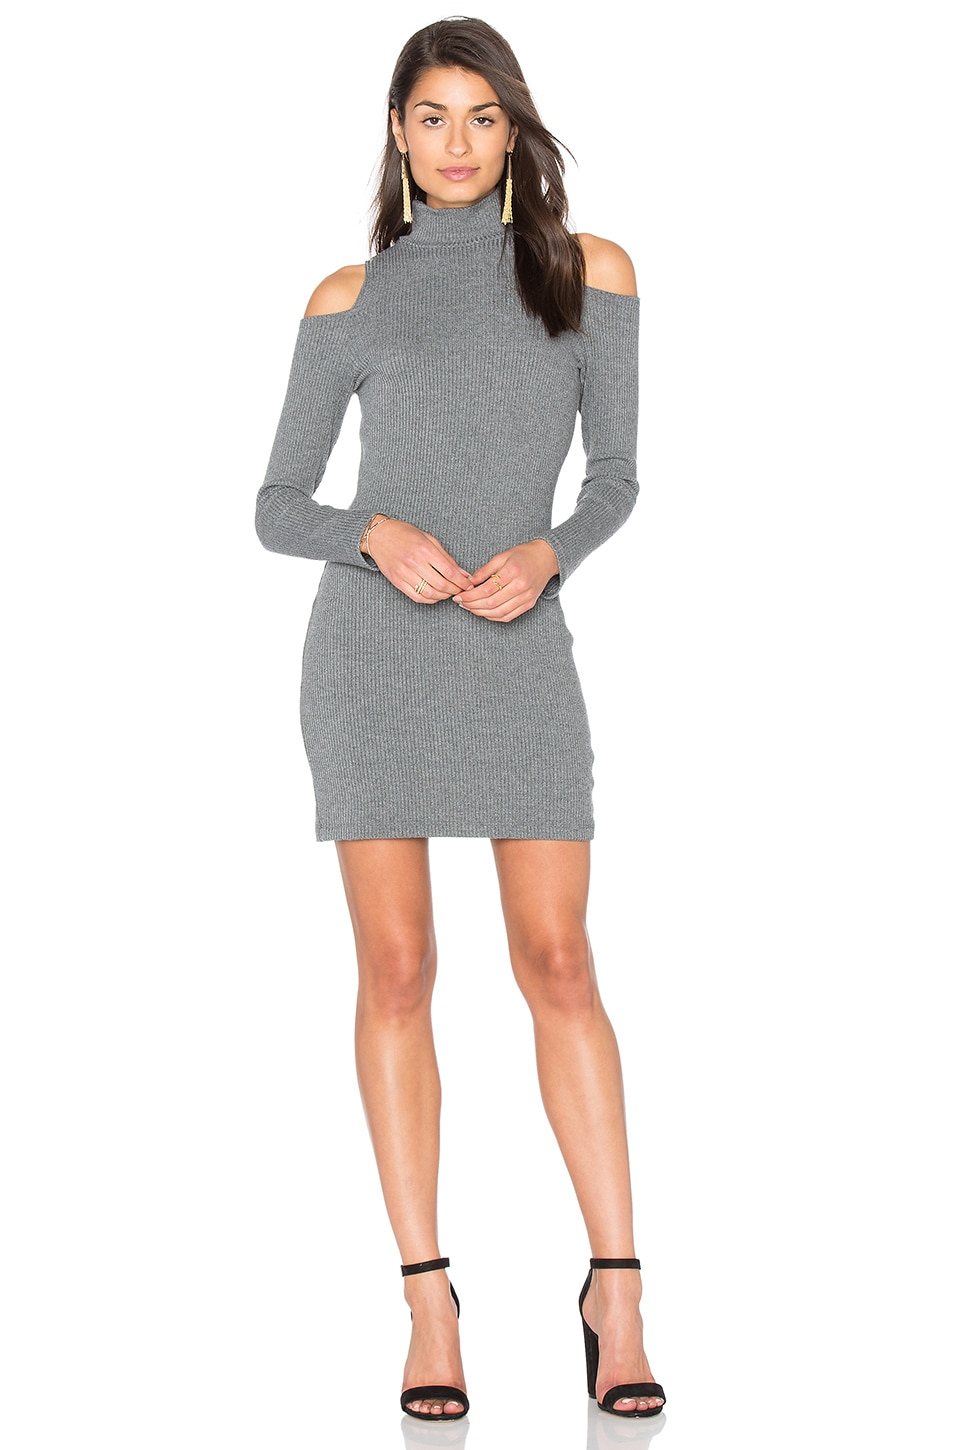 Splendid Waffle Loose Knit Mini Dress in Dark Heather Grey